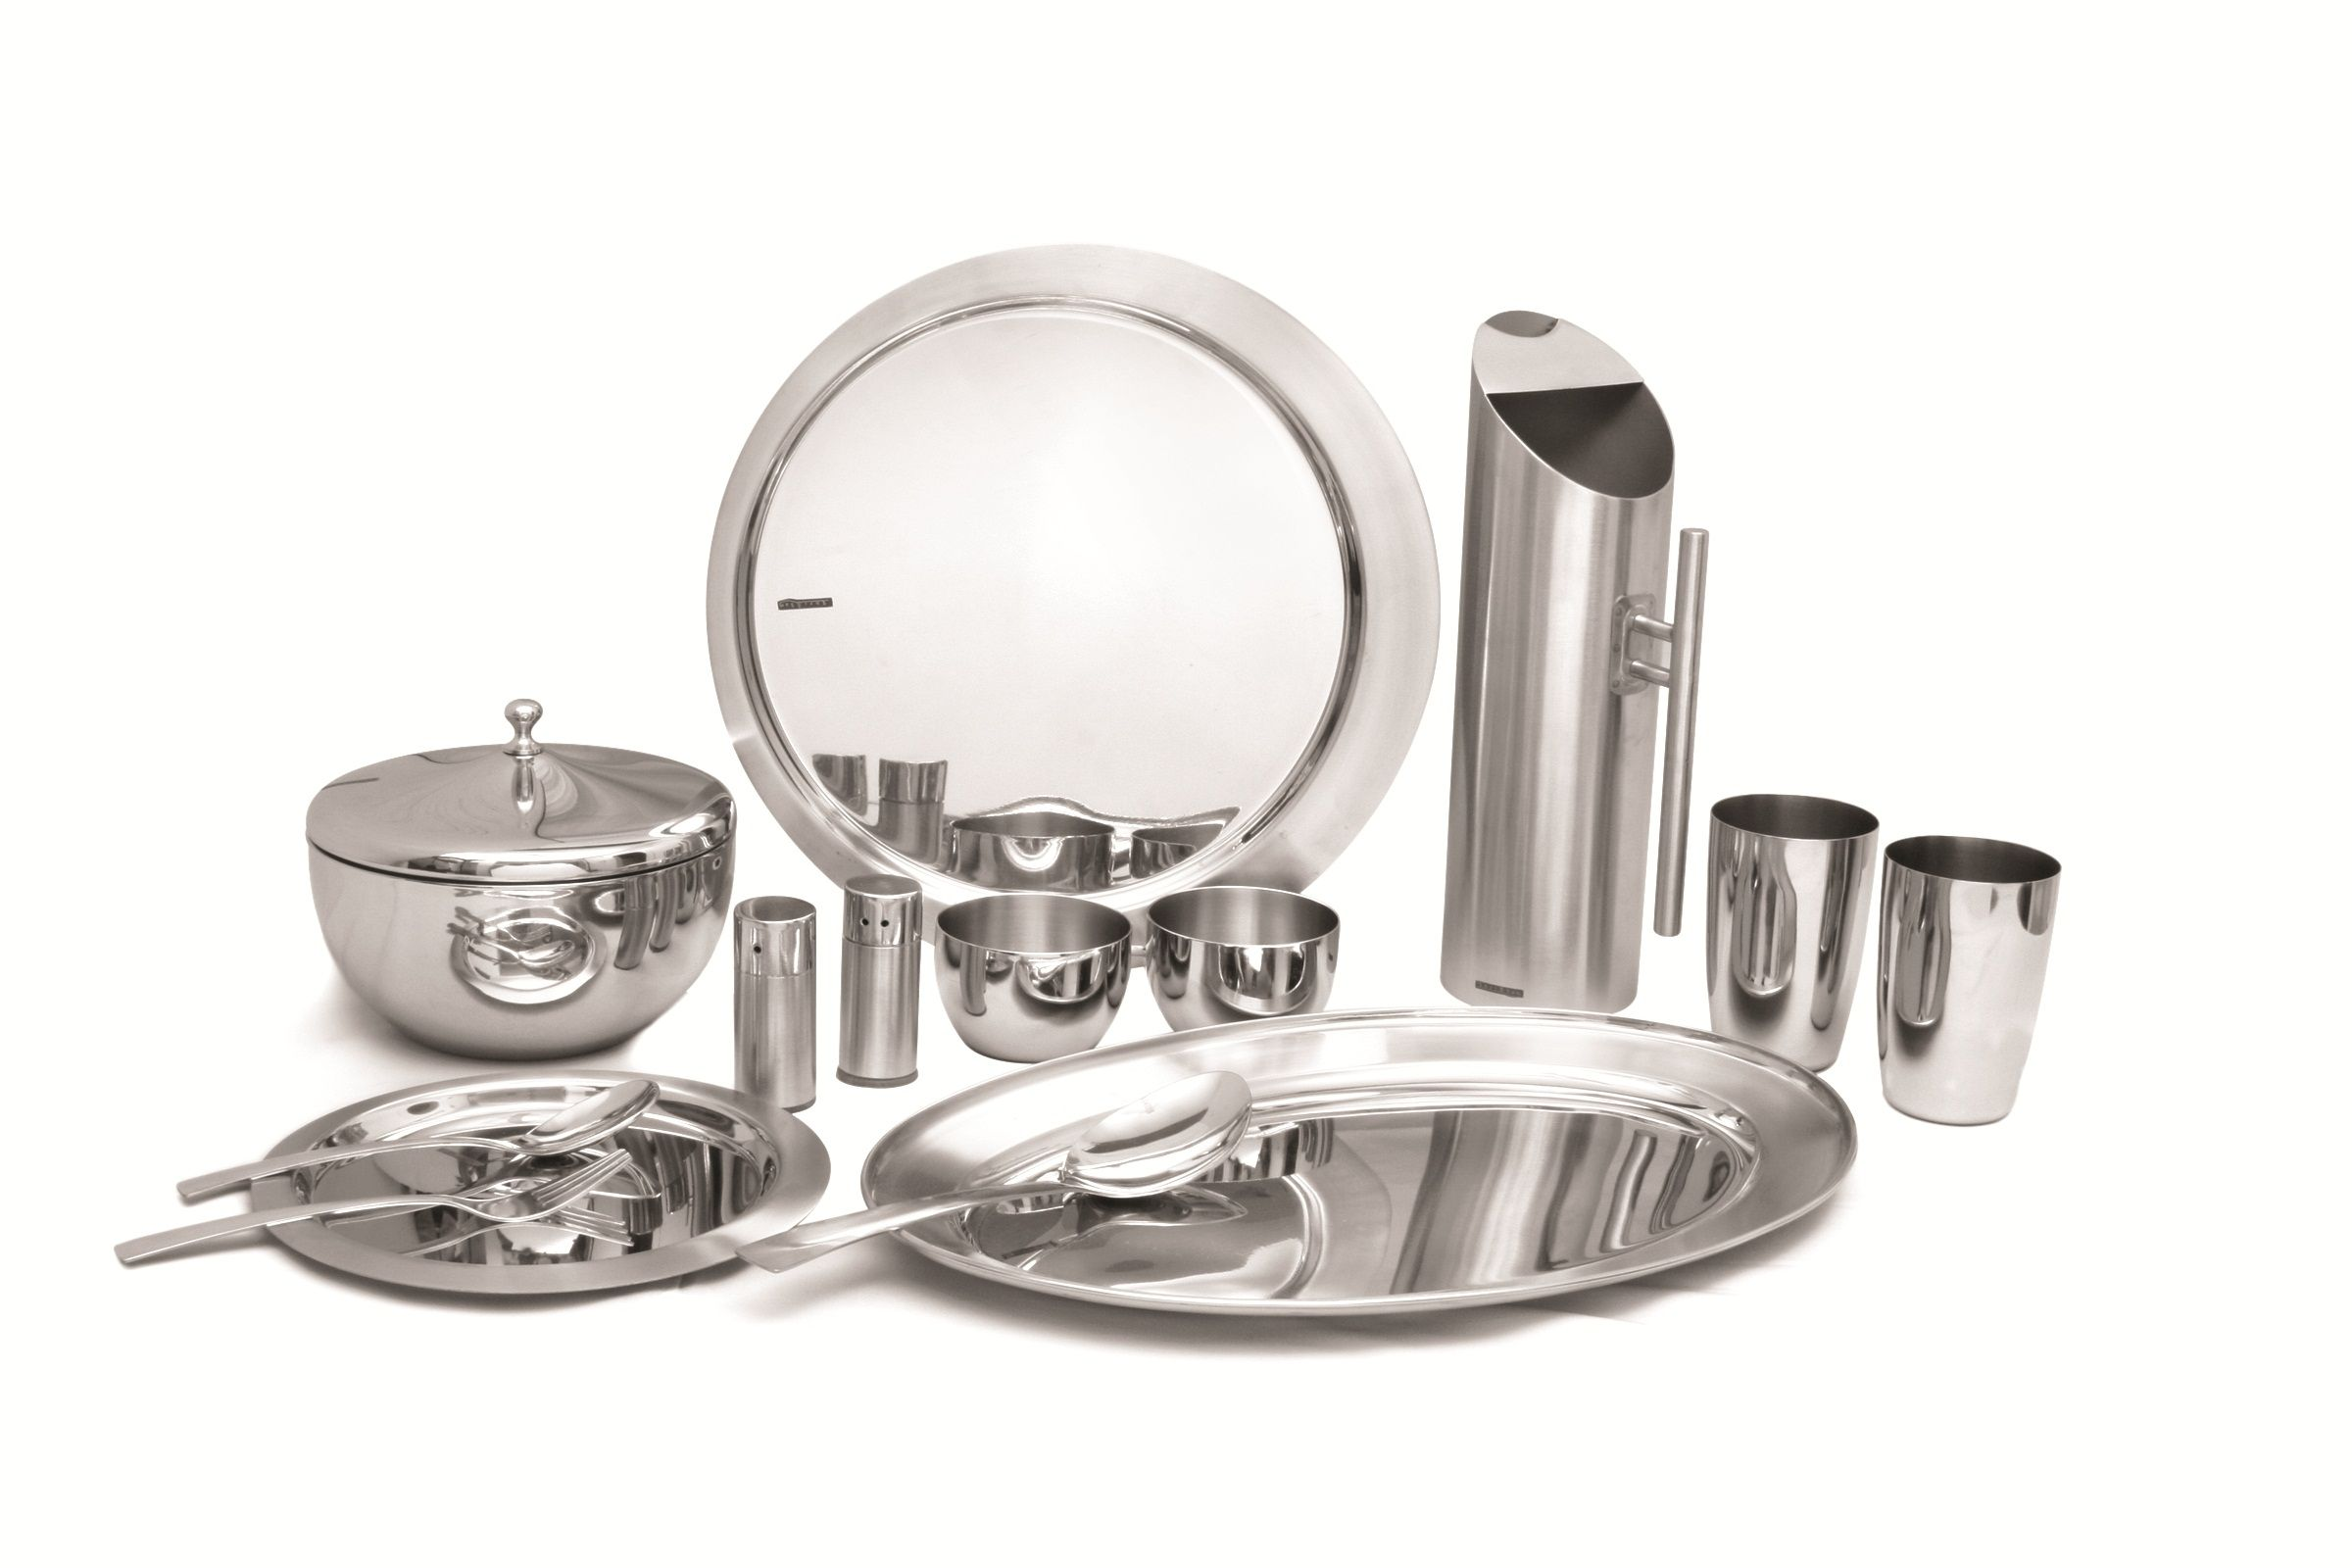 stainless steel dinnerware set from india.  sc 1 st  Pinterest & stainless steel dinnerware set from india.   Props.   Pinterest ...